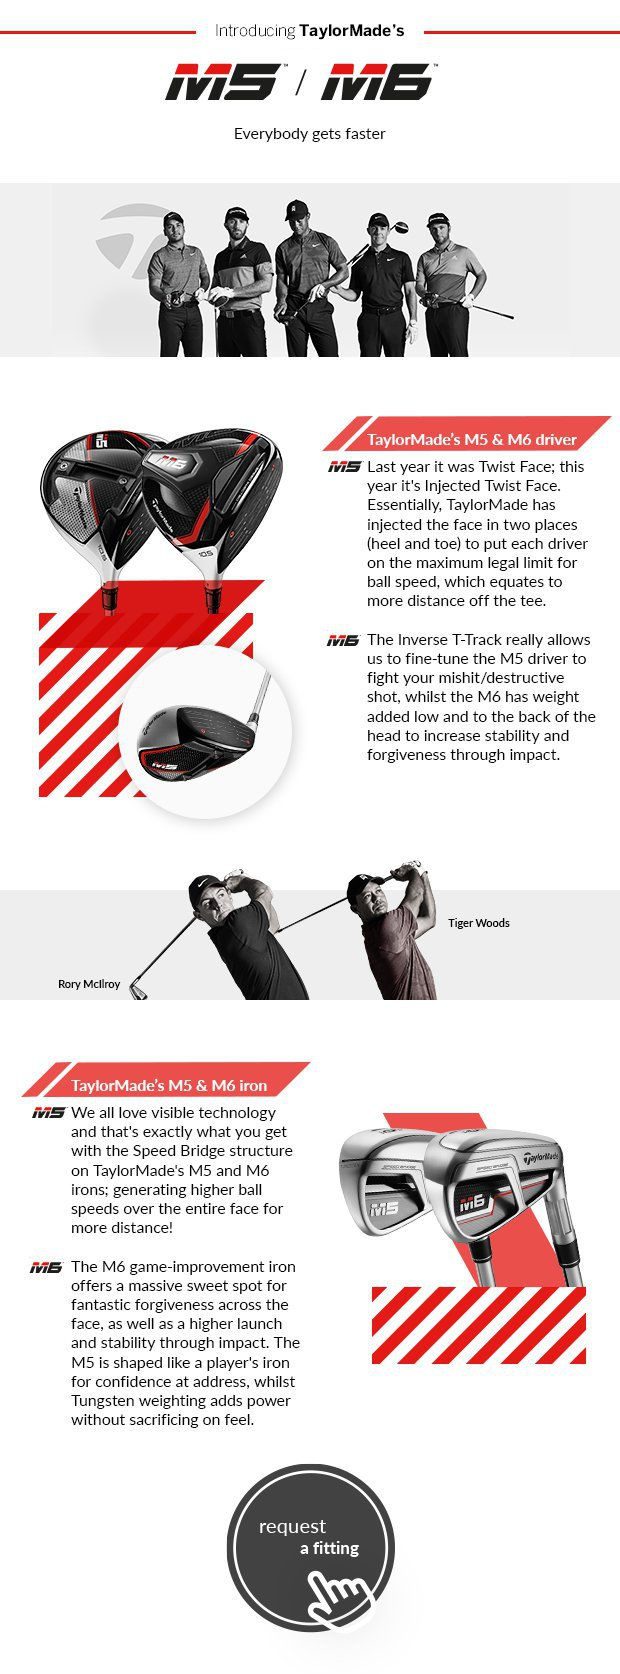 Introducing TaylorMade's M5/M6. Everybody gets faster.